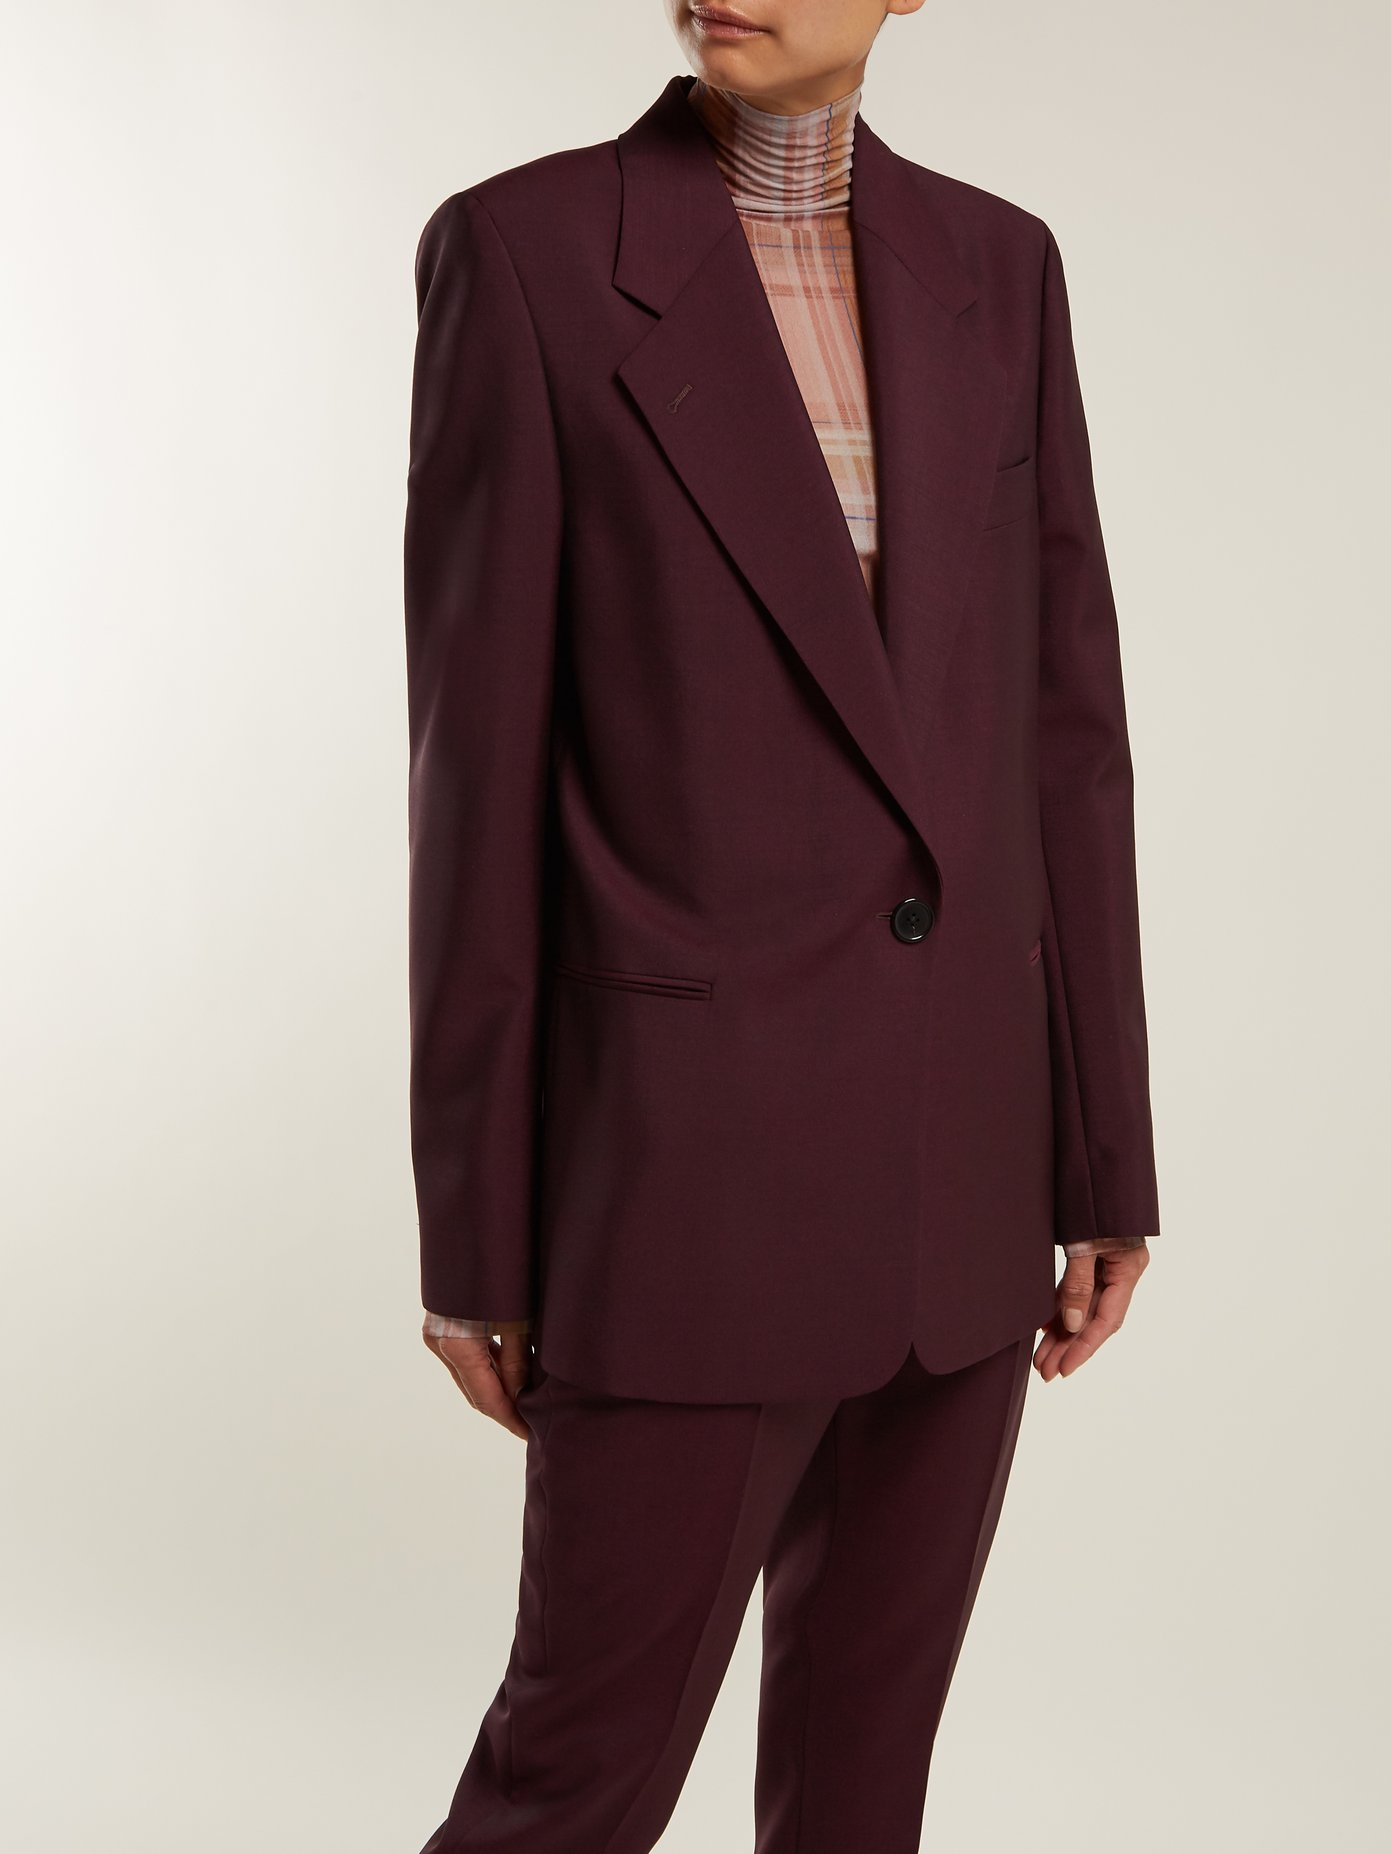 ACNE STUDIOS / SINGLE-BREASTED WOOL MOHAIR BLEND BLAZER $650 - available at Matchesfashion